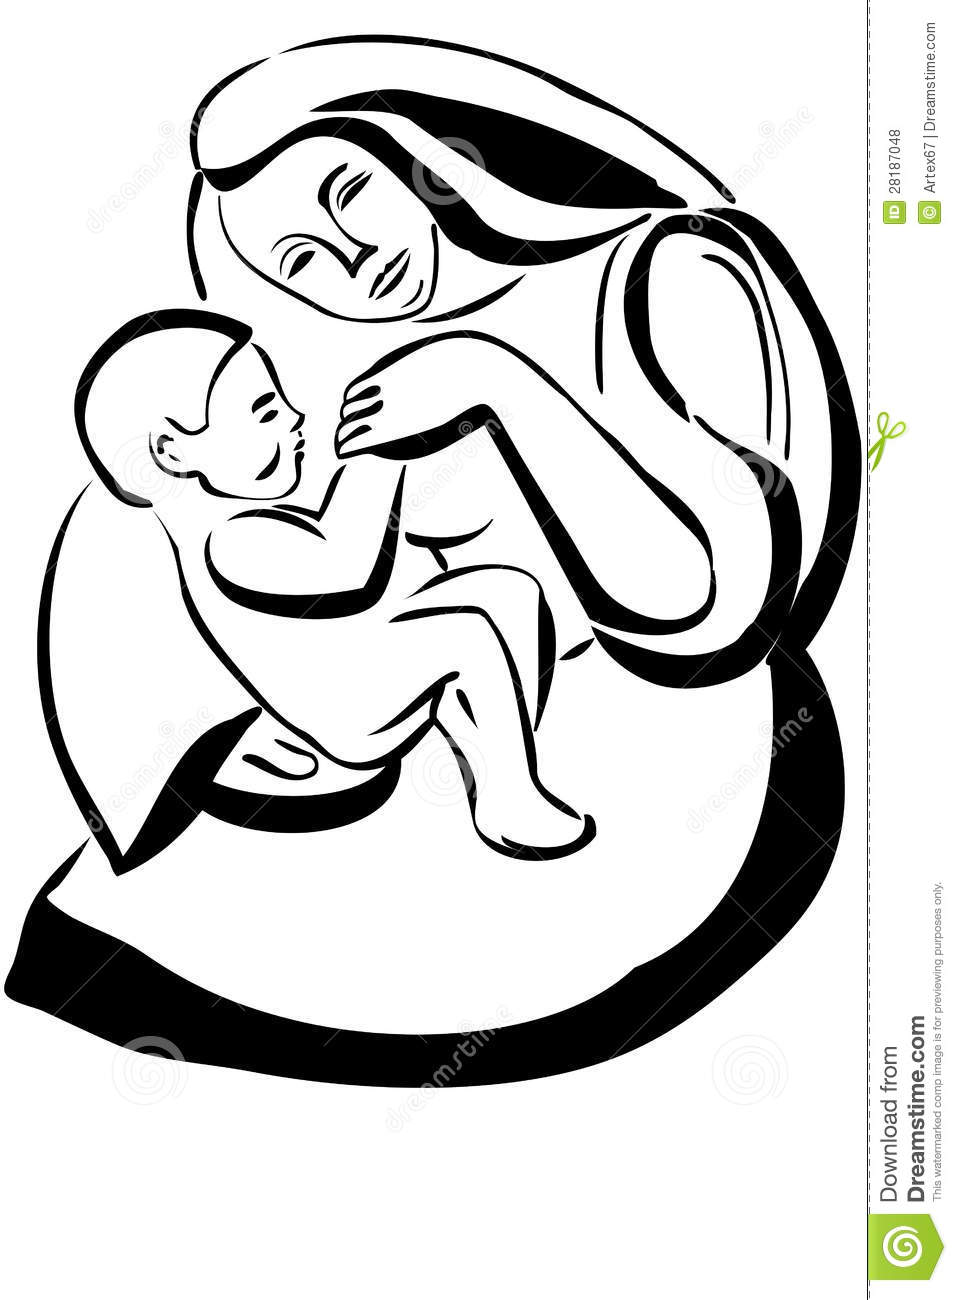 Sketch woman mother holding baby stock illustrations 405 sketch woman mother holding baby stock illustrations vectors clipart dreamstime